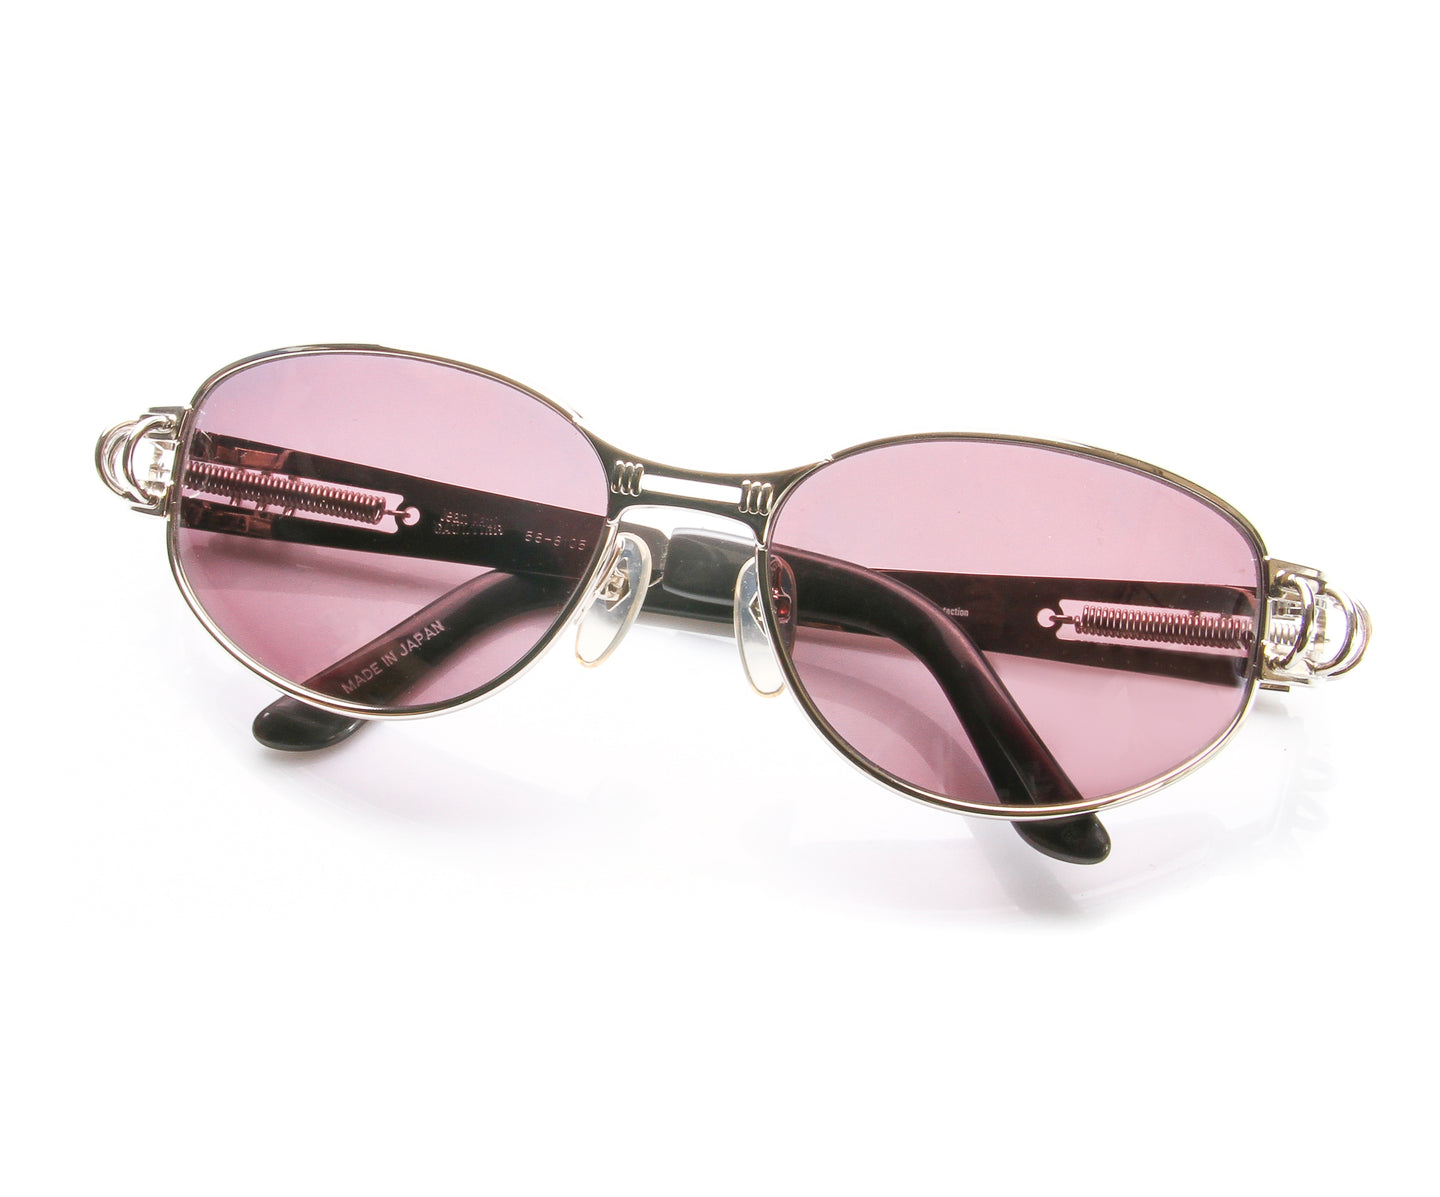 Jean Paul Gaultier 56 6105 2, Jean Paul Gaultier , glasses frames, eyeglasses online, eyeglass frames, mens glasses, womens glasses, buy glasses online, designer eyeglasses, vintage sunglasses, retro sunglasses, vintage glasses, sunglass, eyeglass, glasses, lens, vintage frames company, vf